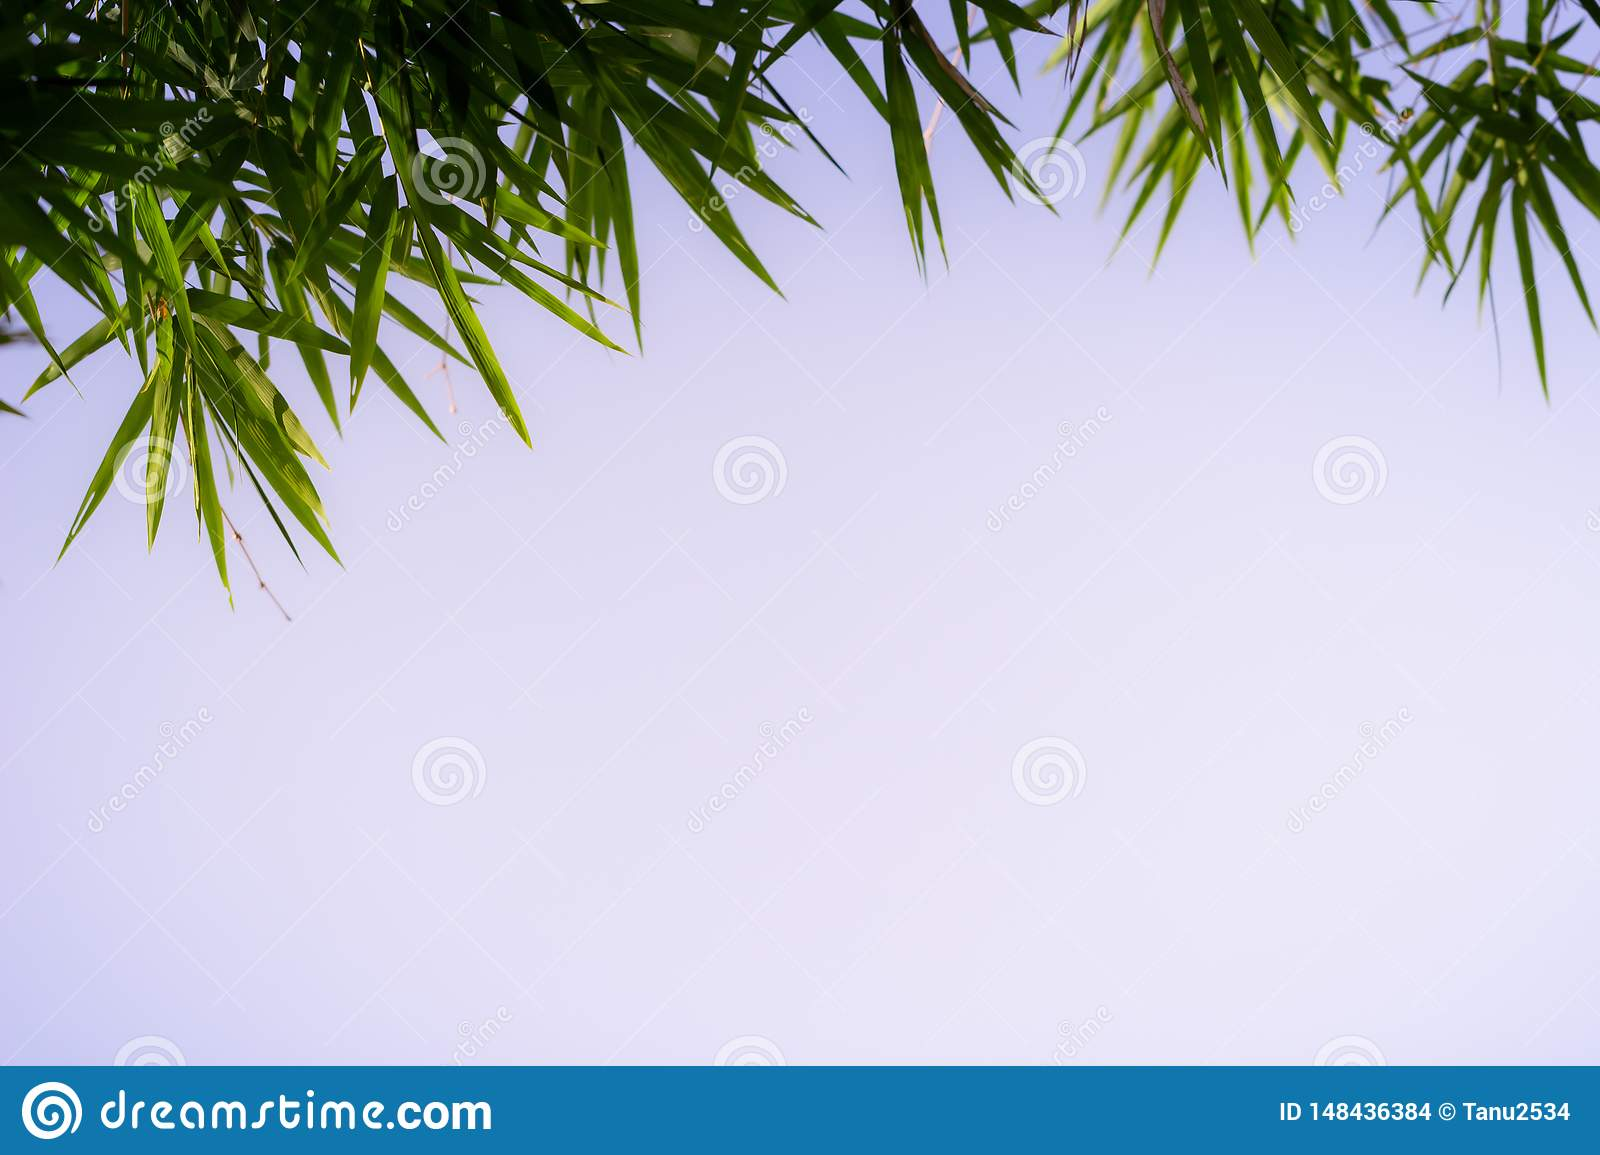 Green leaf on blurred greenery background. Beautiful leaf texture in nature. Natural background.